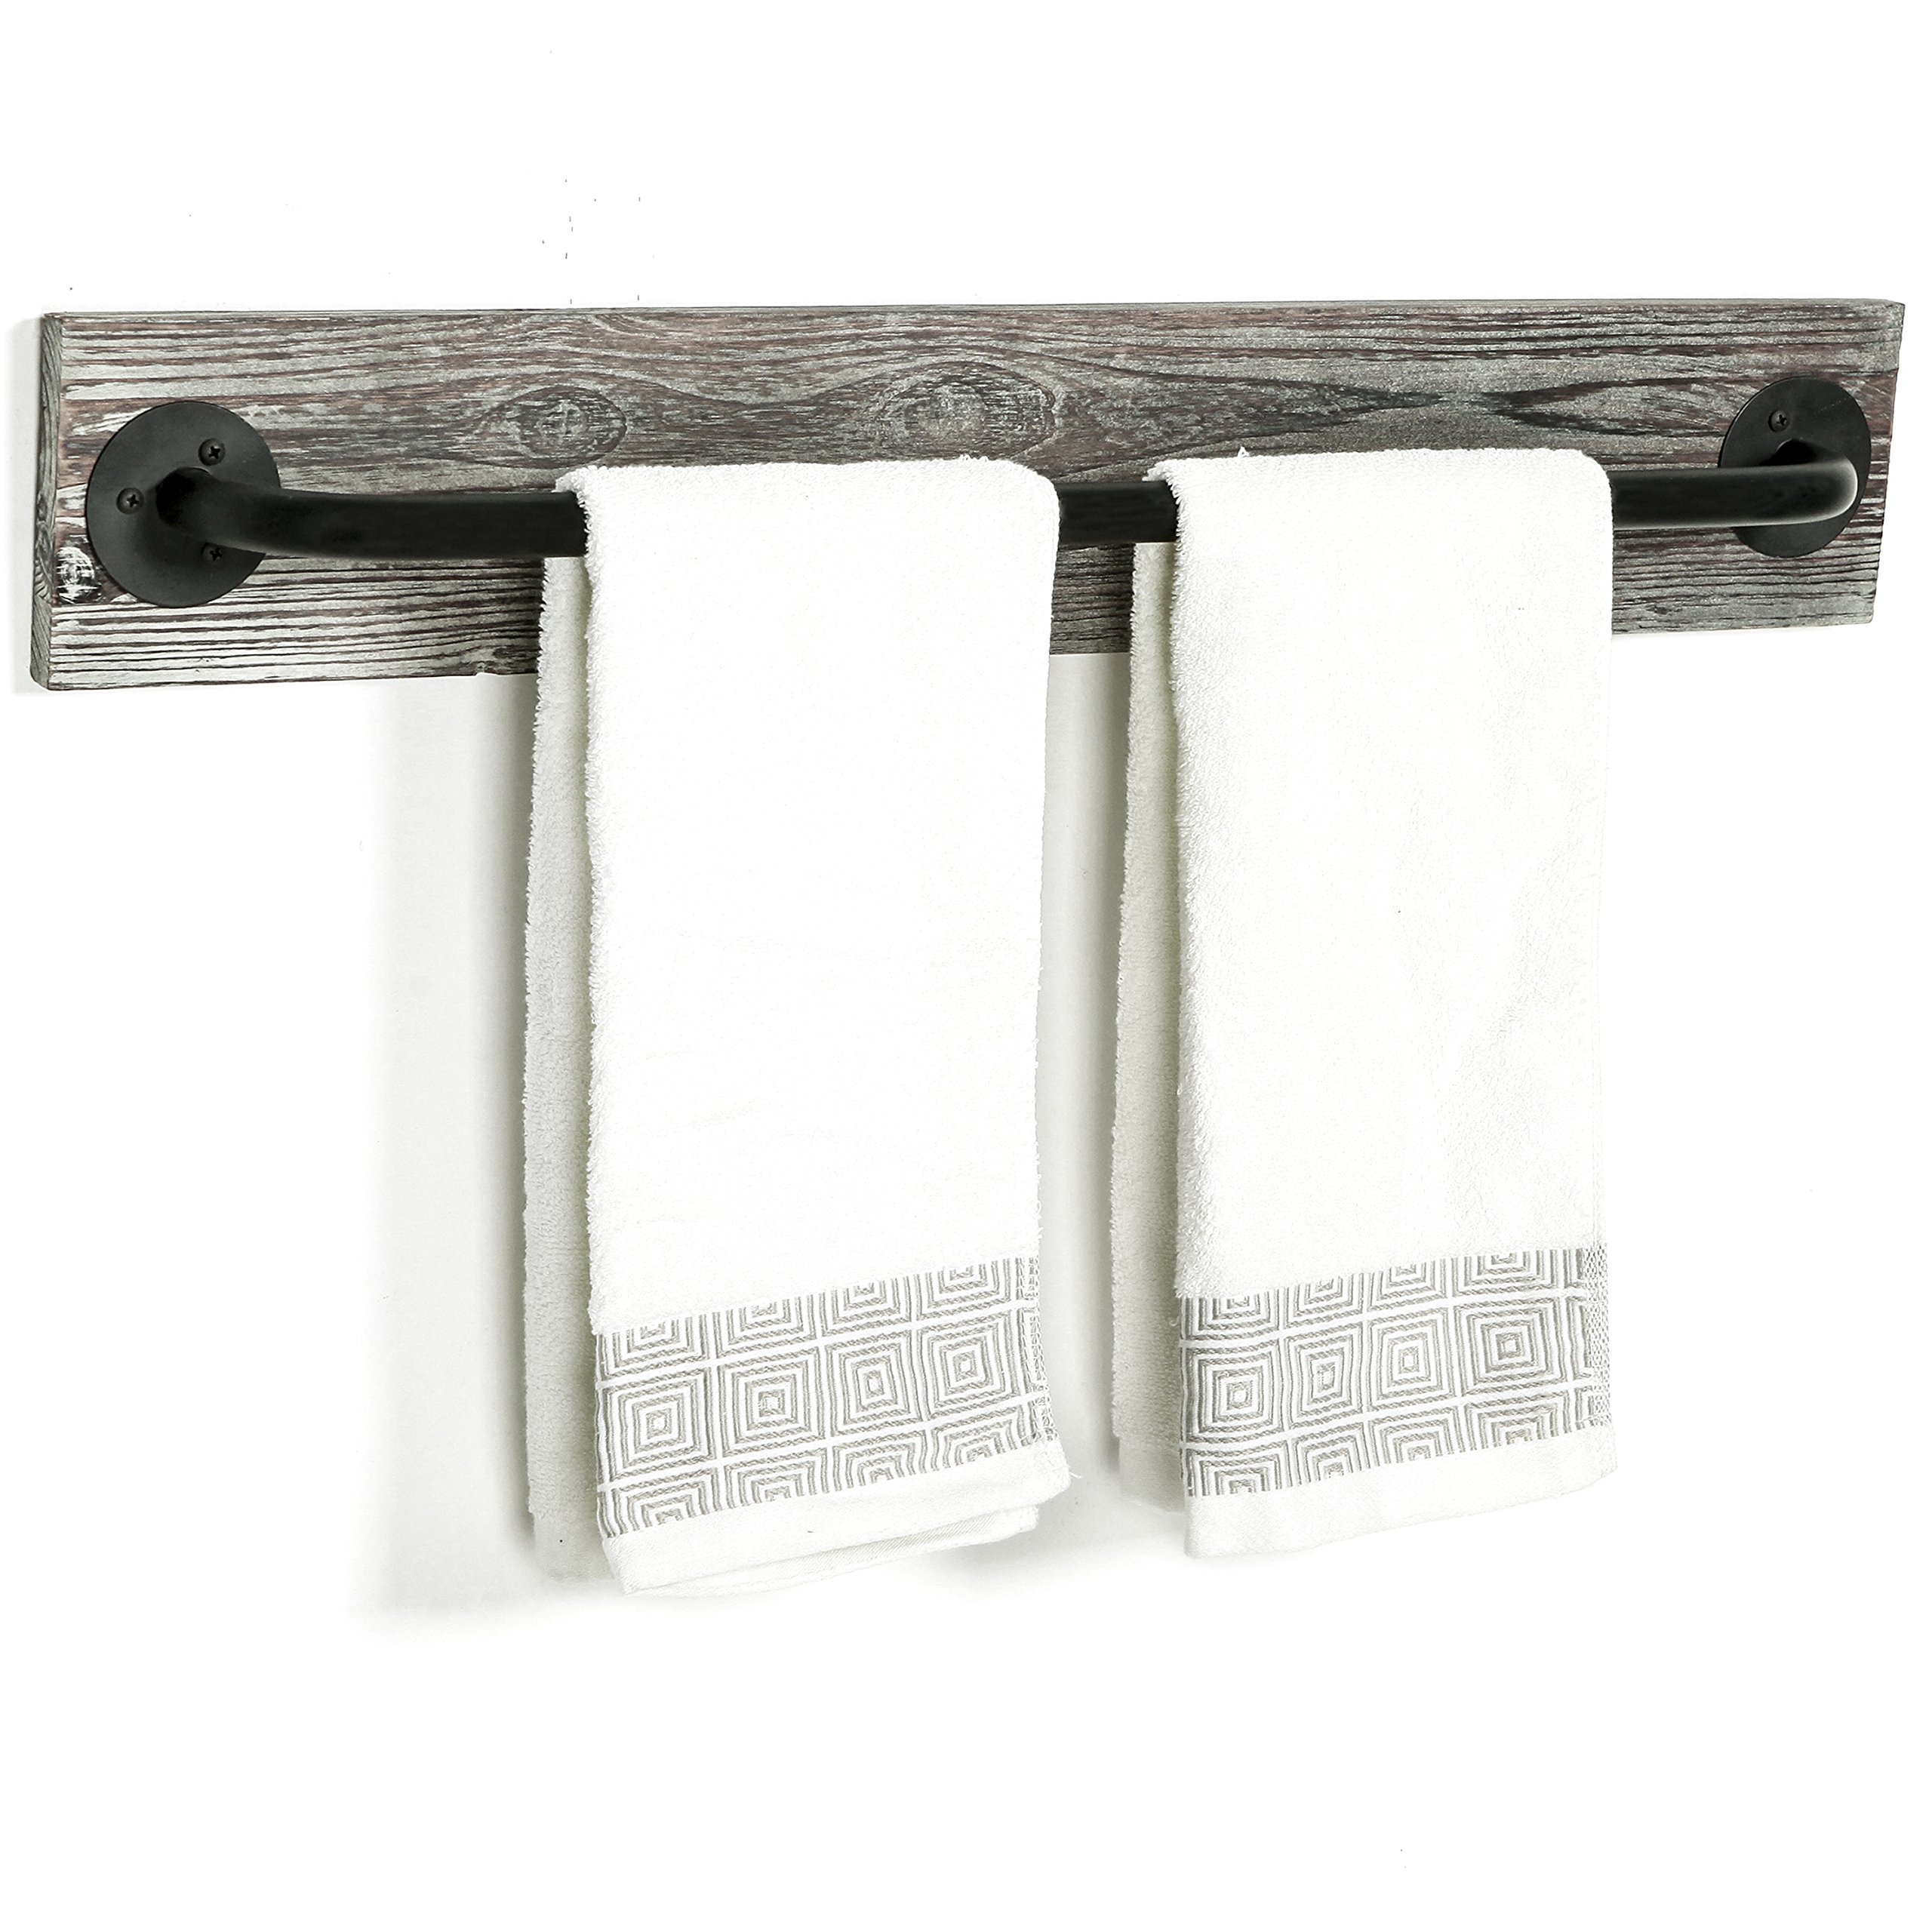 MyGift Torched Wood & Black Metal Wall Mounted Bathroom Towel Bar Rack by MyGift